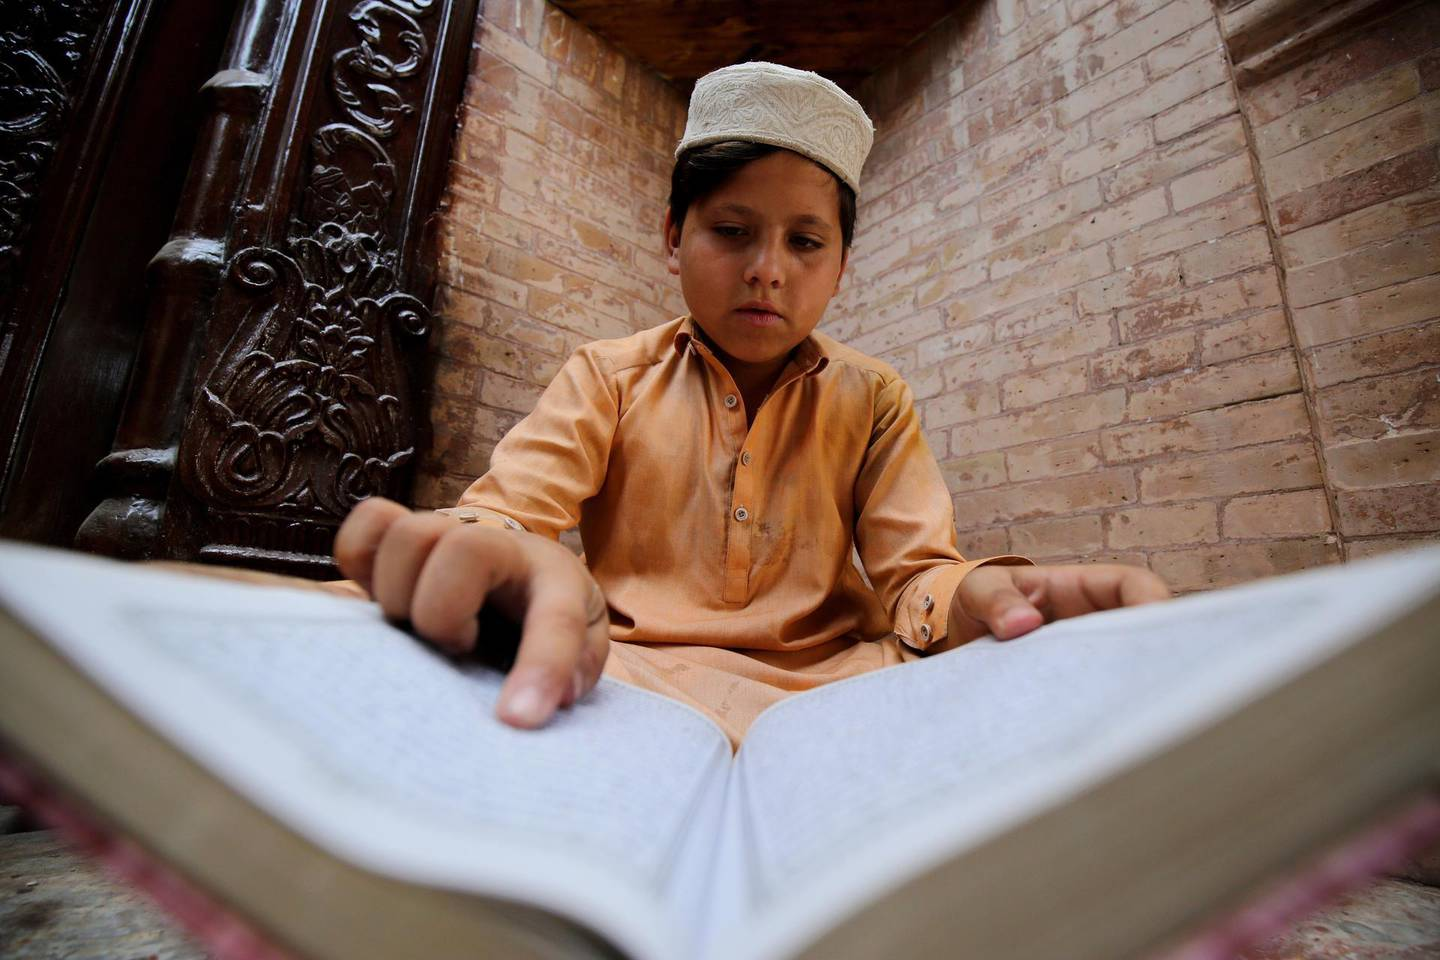 epa09169550 A Pakistani Muslim boy reads verses from the holy Koran at a Mosque during the fasting month of Ramadan, amid the coronavirus pandemic in Peshawar, Pakistan, 30 April 2021. Muslims around the world celebrate the holy month of Ramadan by praying during the night time and abstaining from eating, drinking, and sexual acts during the period between sunrise and sunset. Ramadan is the ninth month in the Islamic calendar and it is believed that the revelation of the first verse in Koran was during its last 10 nights.  EPA/BILAWAL ARBAB